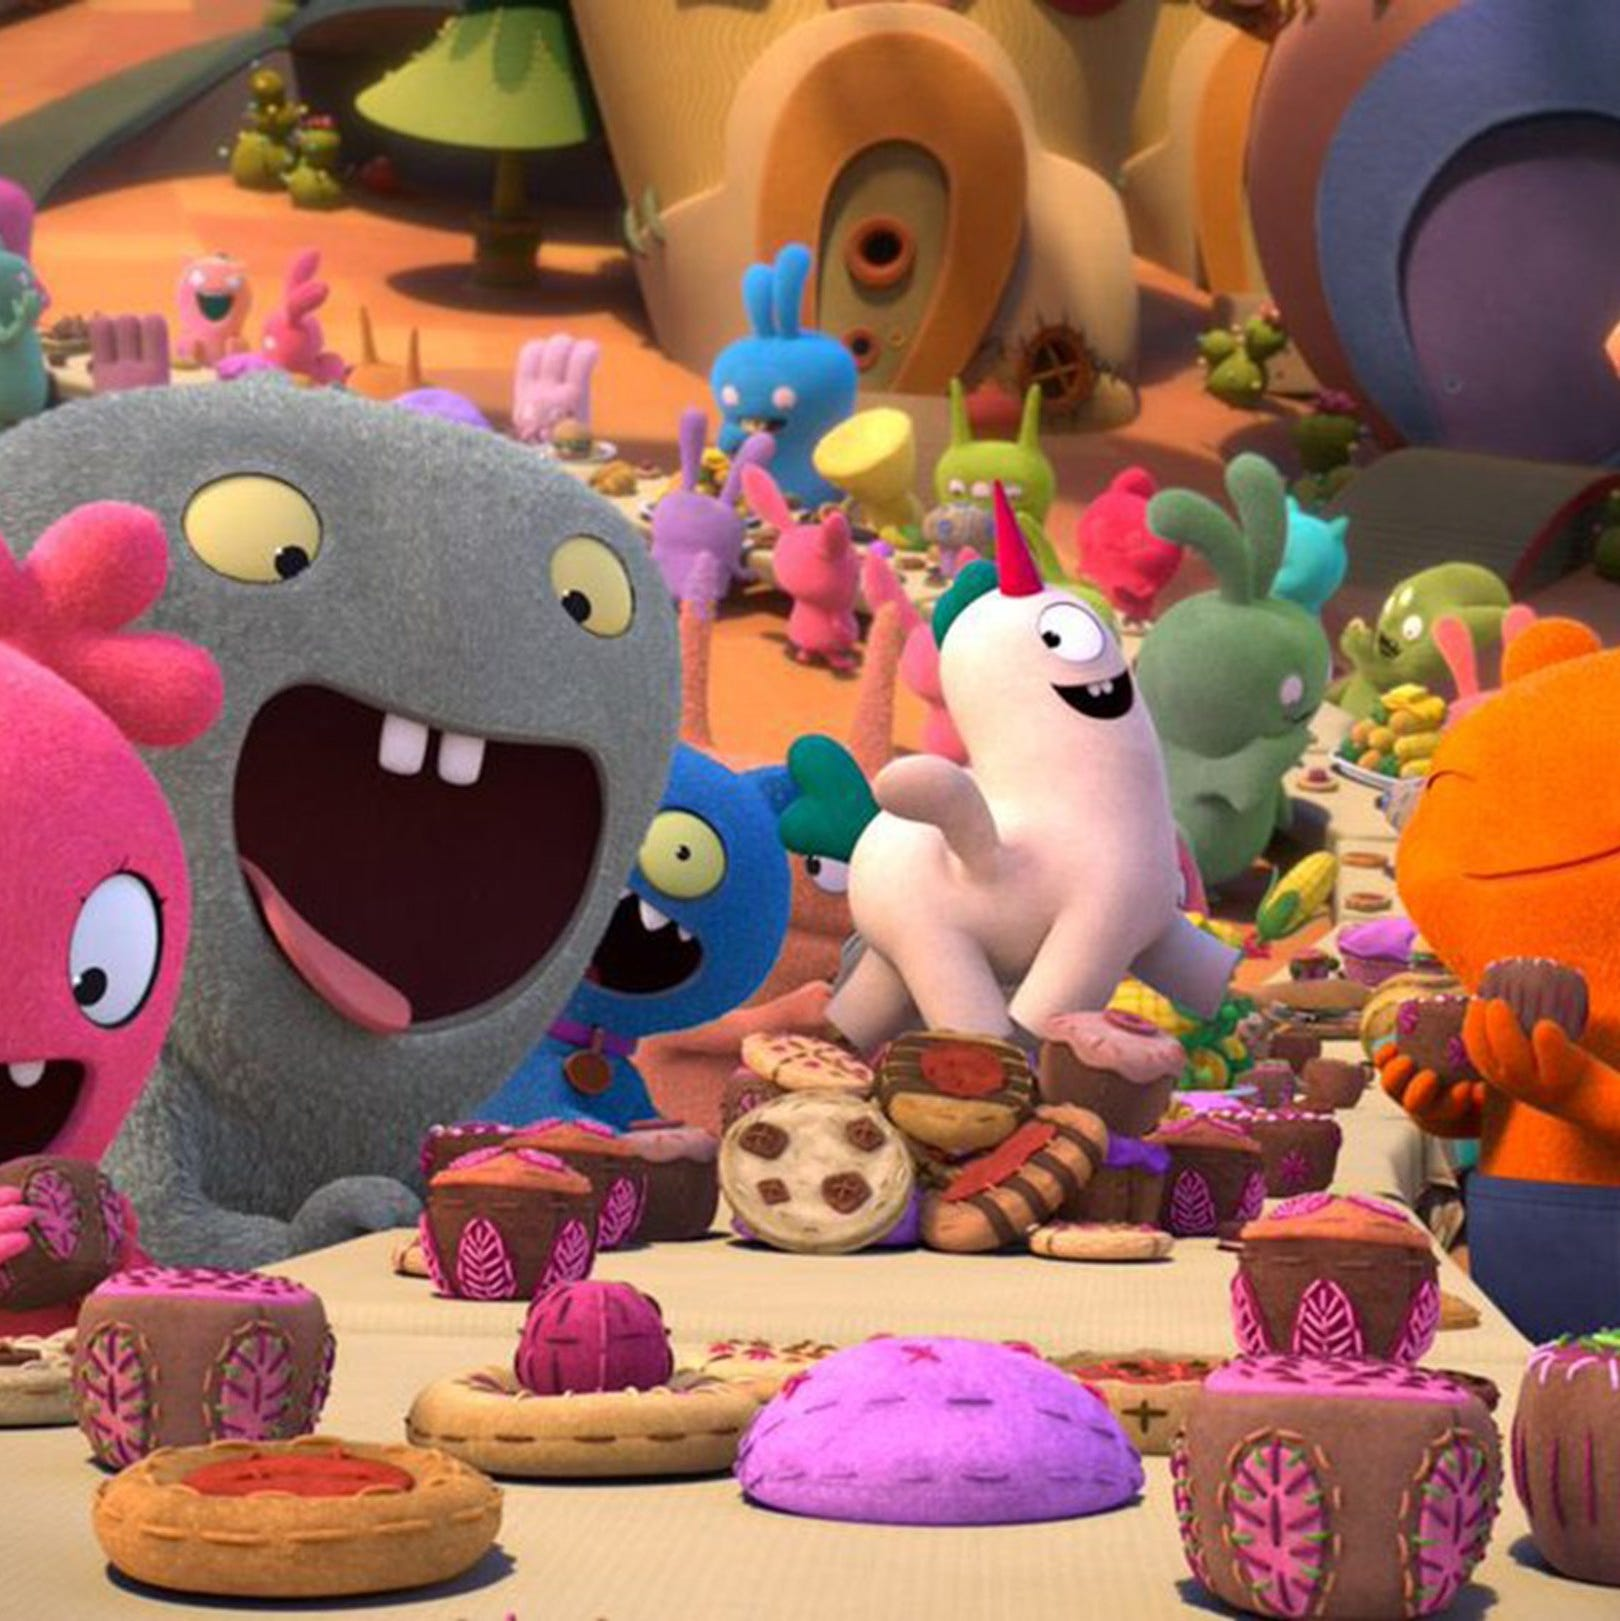 'UglyDolls' delivers another tired self-esteem lesson